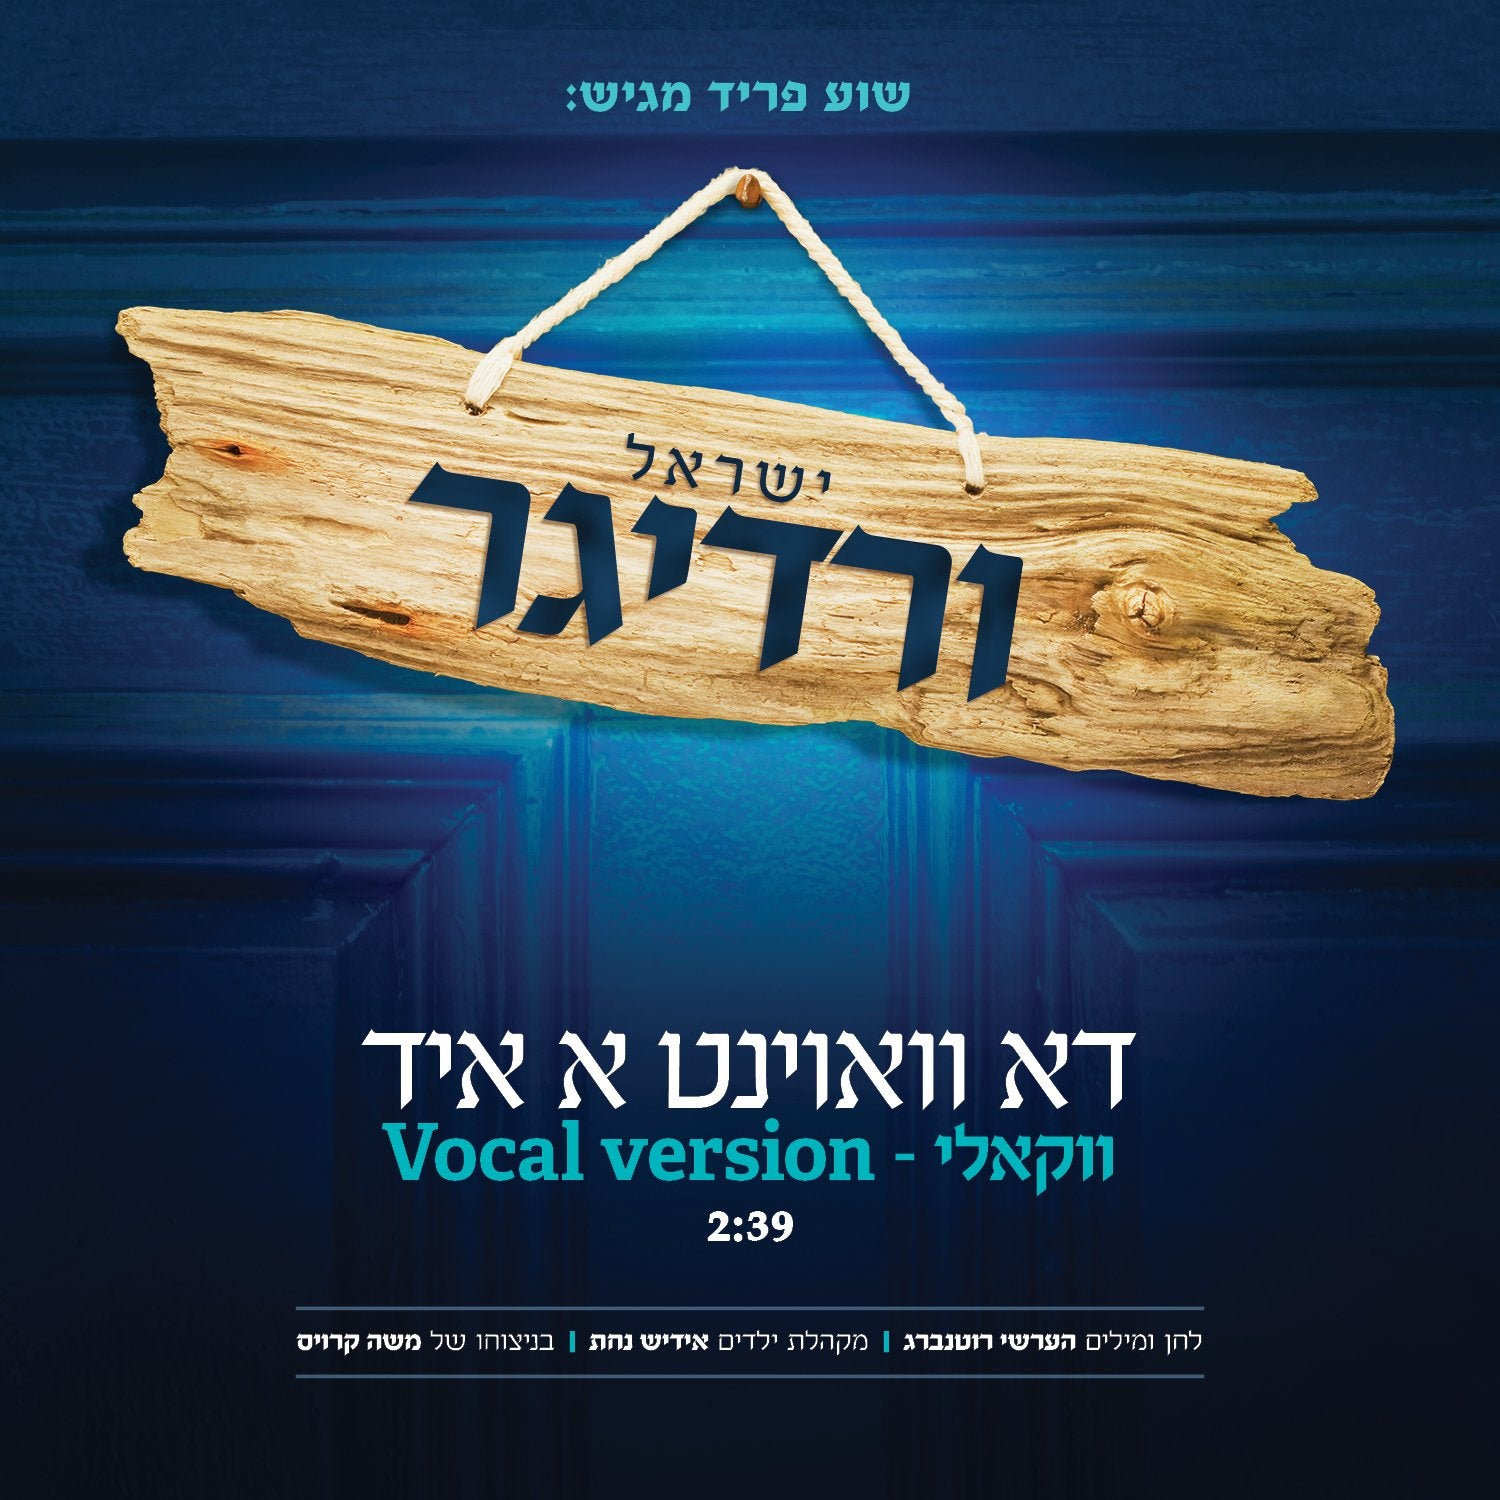 Yisroel Werdyger - Du Voint A Yid (Vocal Version)